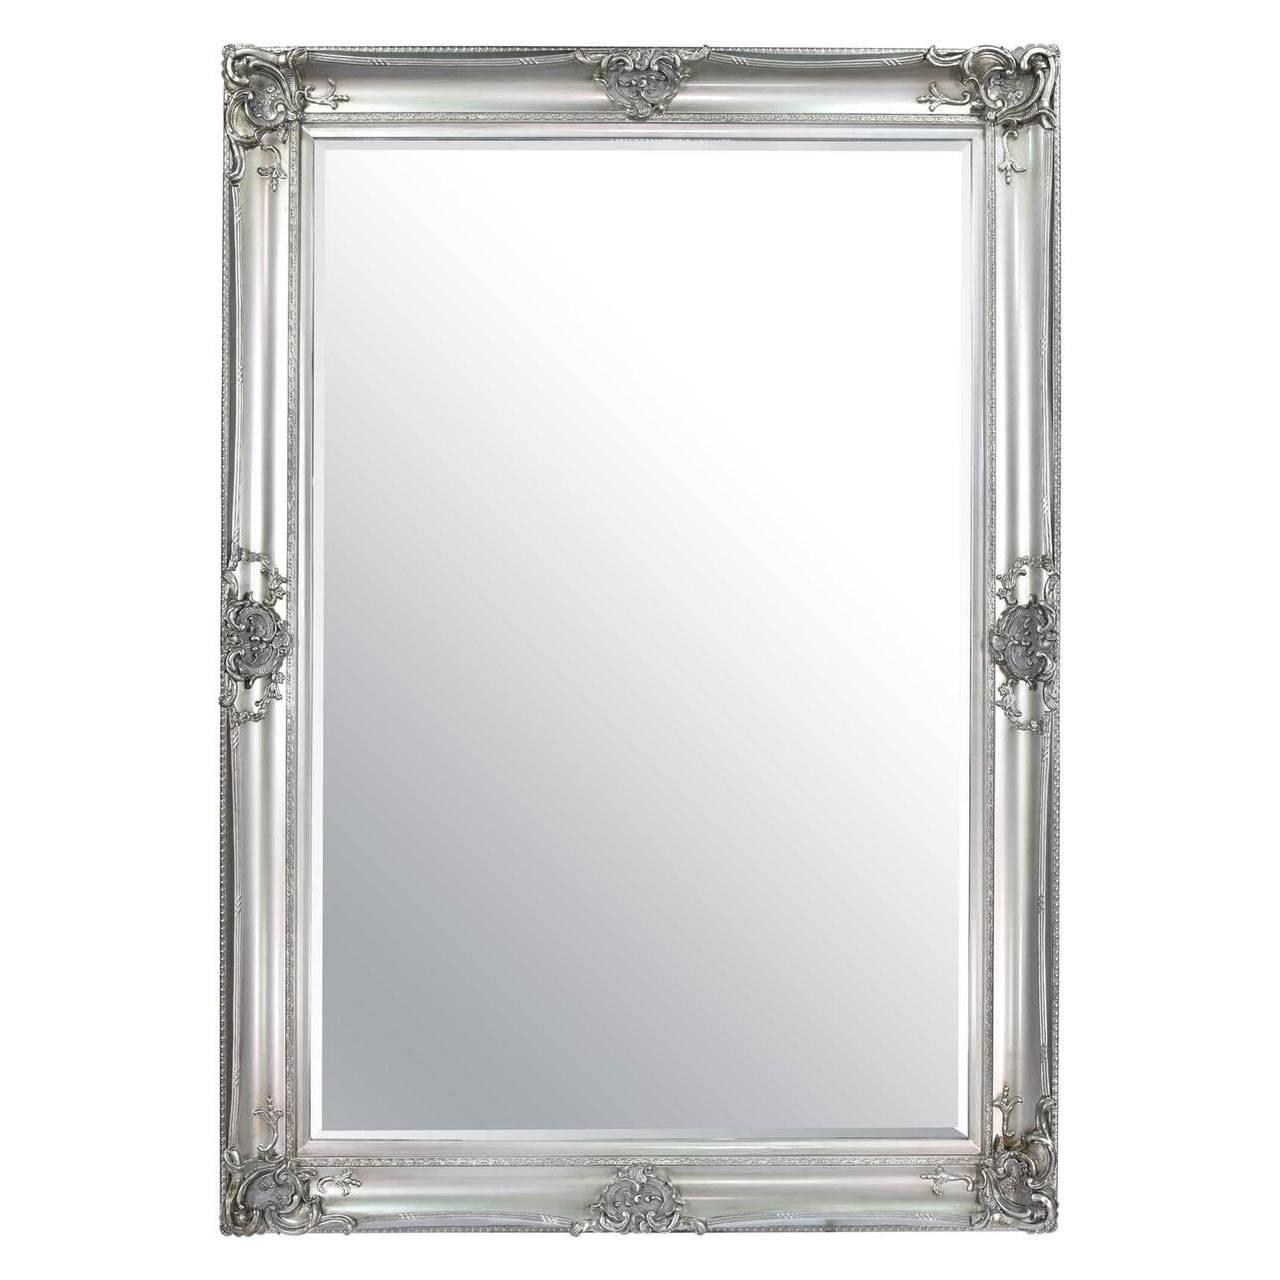 Ornate Framed Mirrors within Ornate Silver Mirrors (Image 14 of 25)